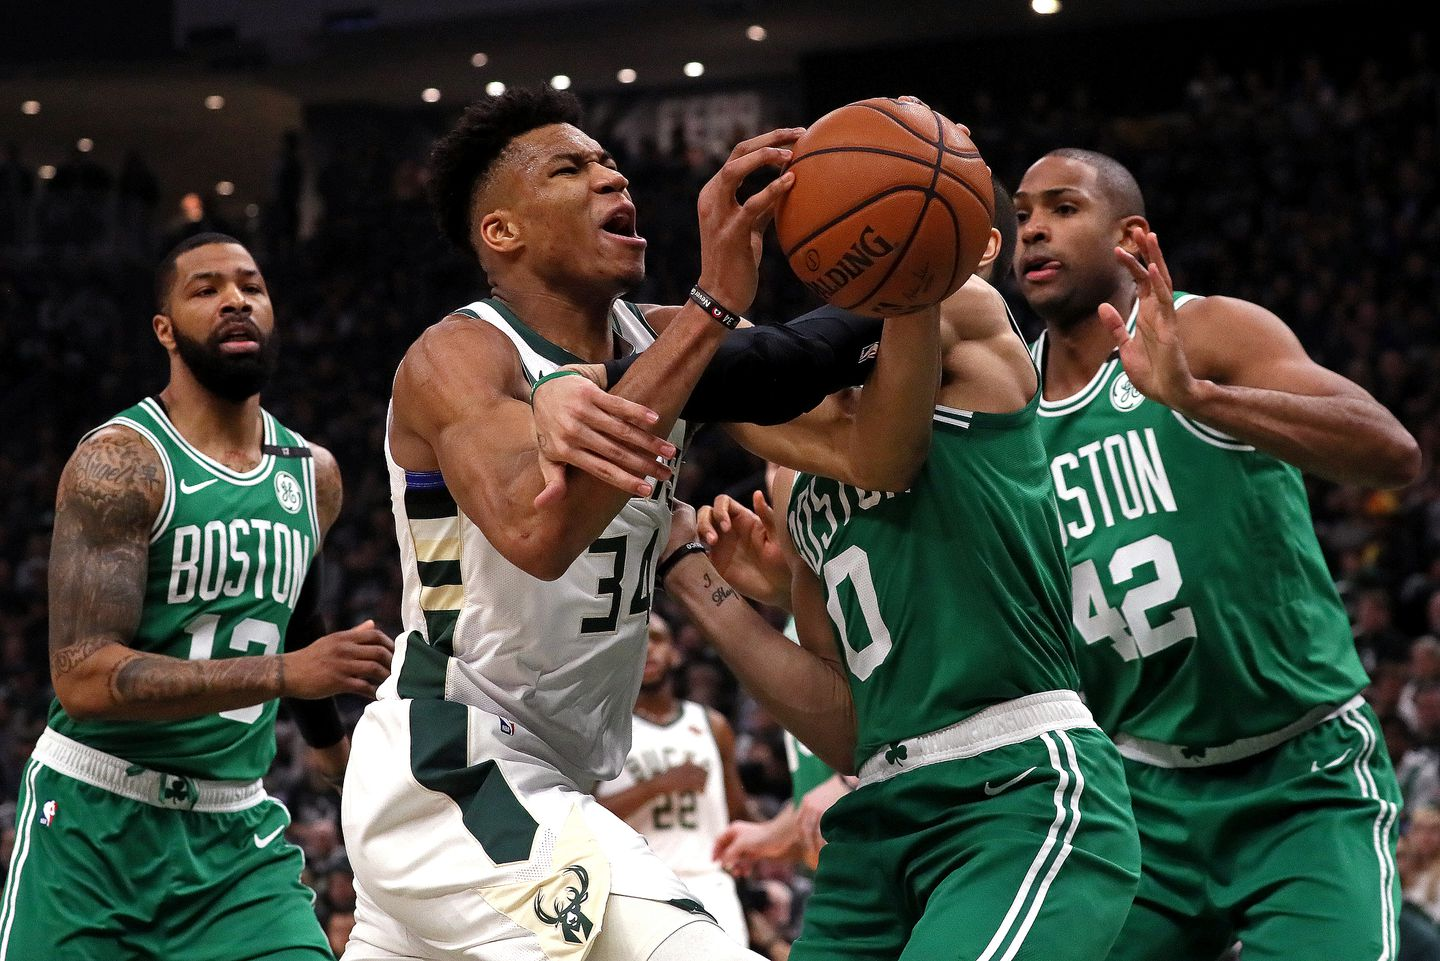 Rampant Bucks Are the Team to Beat After Domination of the Celtics